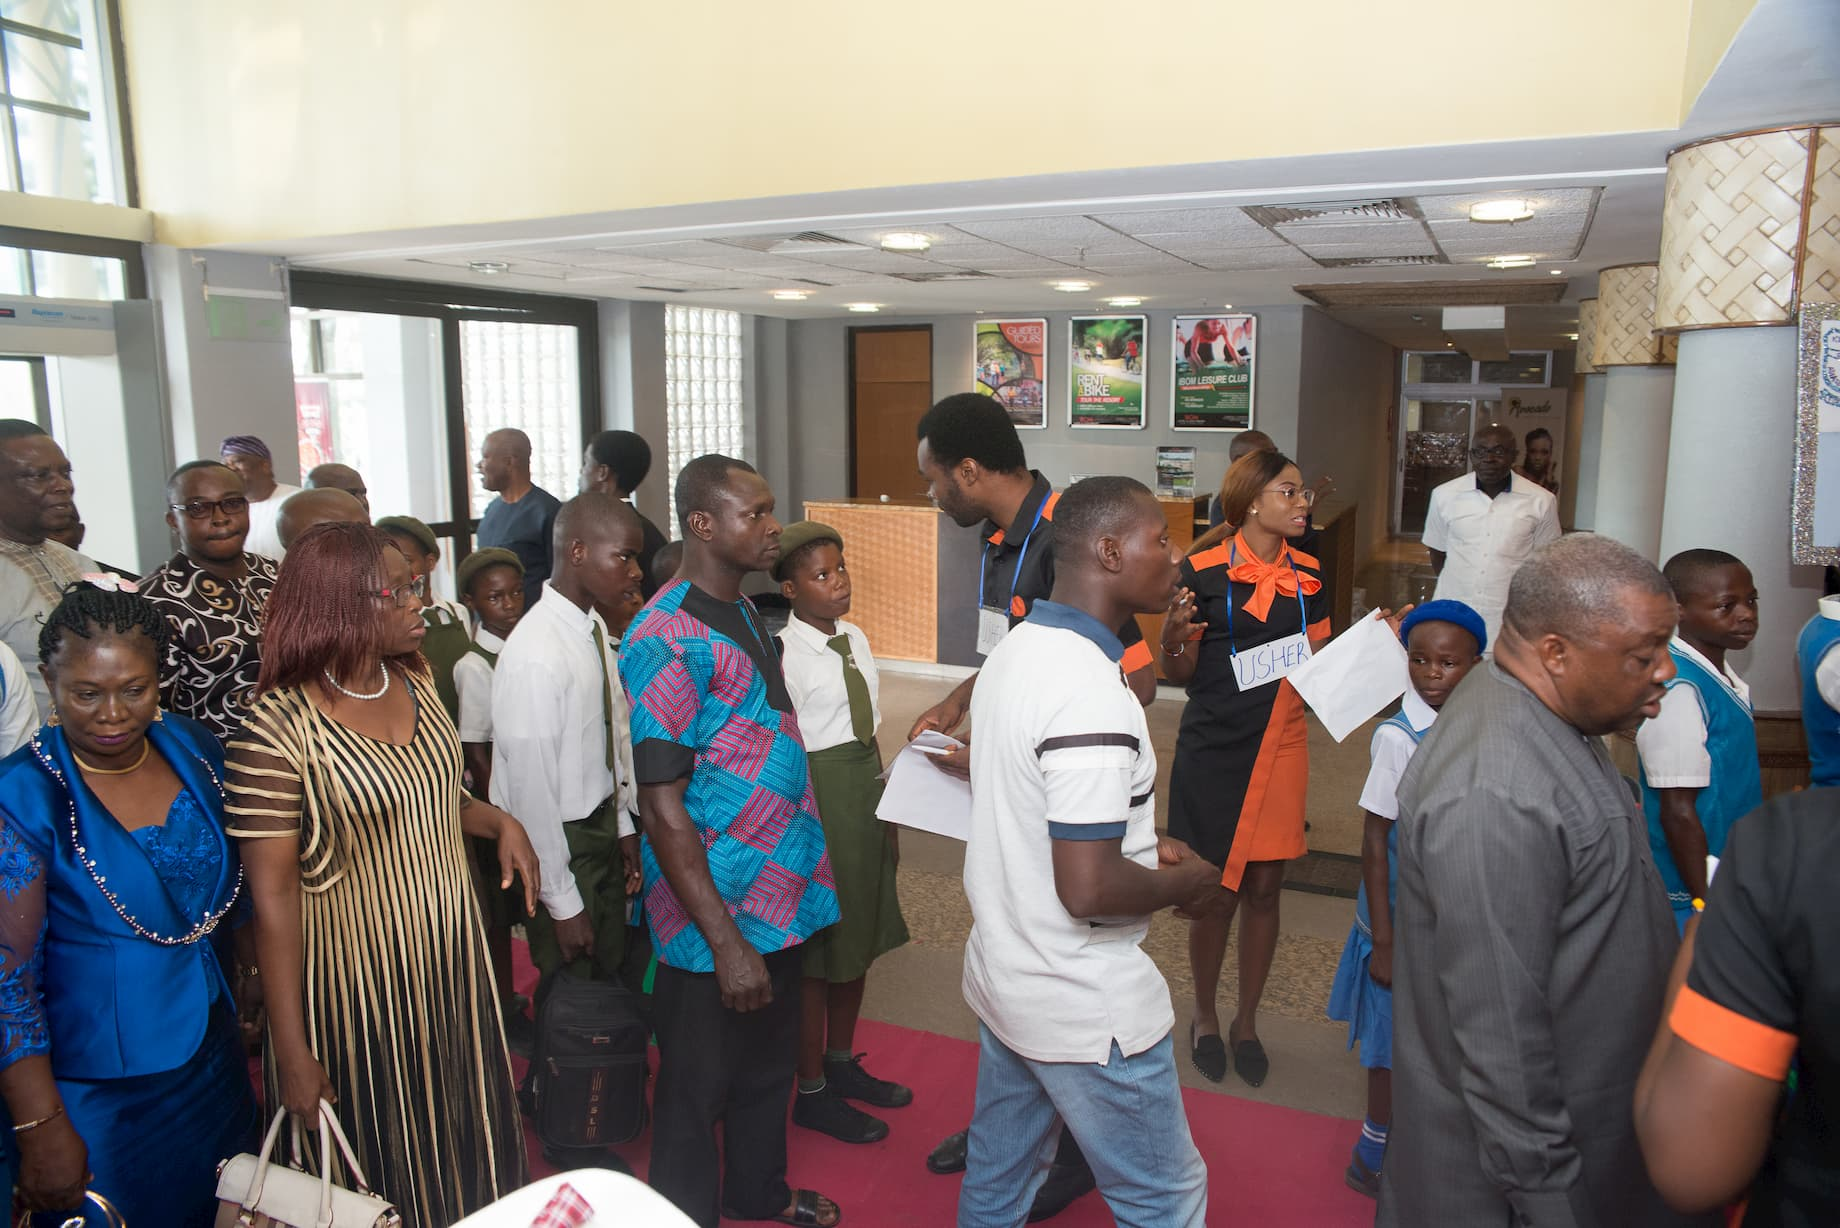 Arrival of guests to the 12th ITF Teacher's Award for Excellence Event